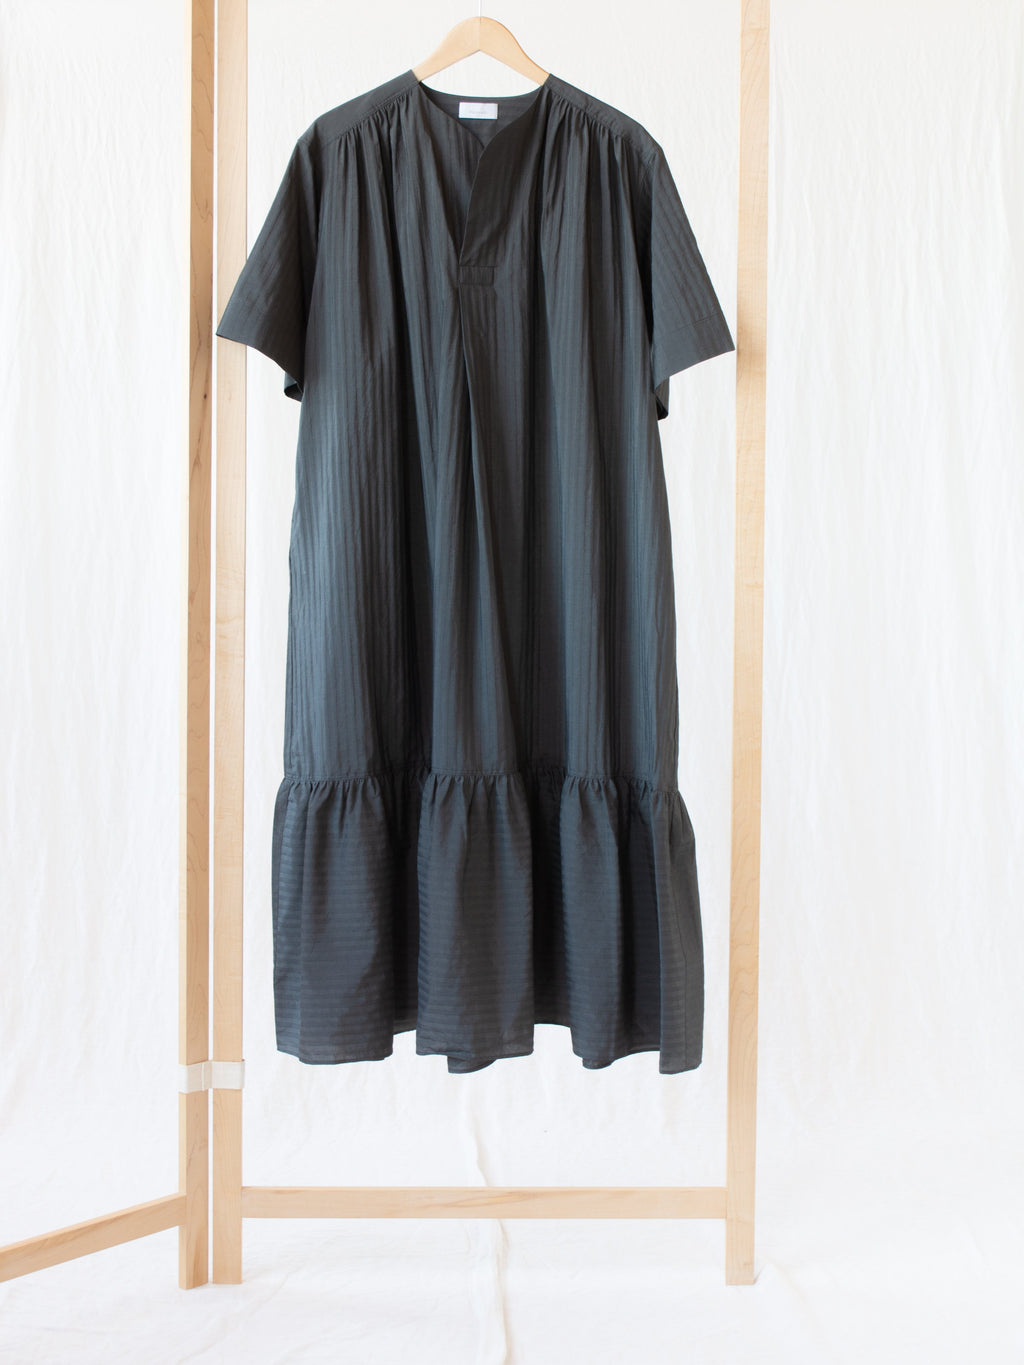 Namu Shop - Phlannel Summer Airy Dress - Deep Black